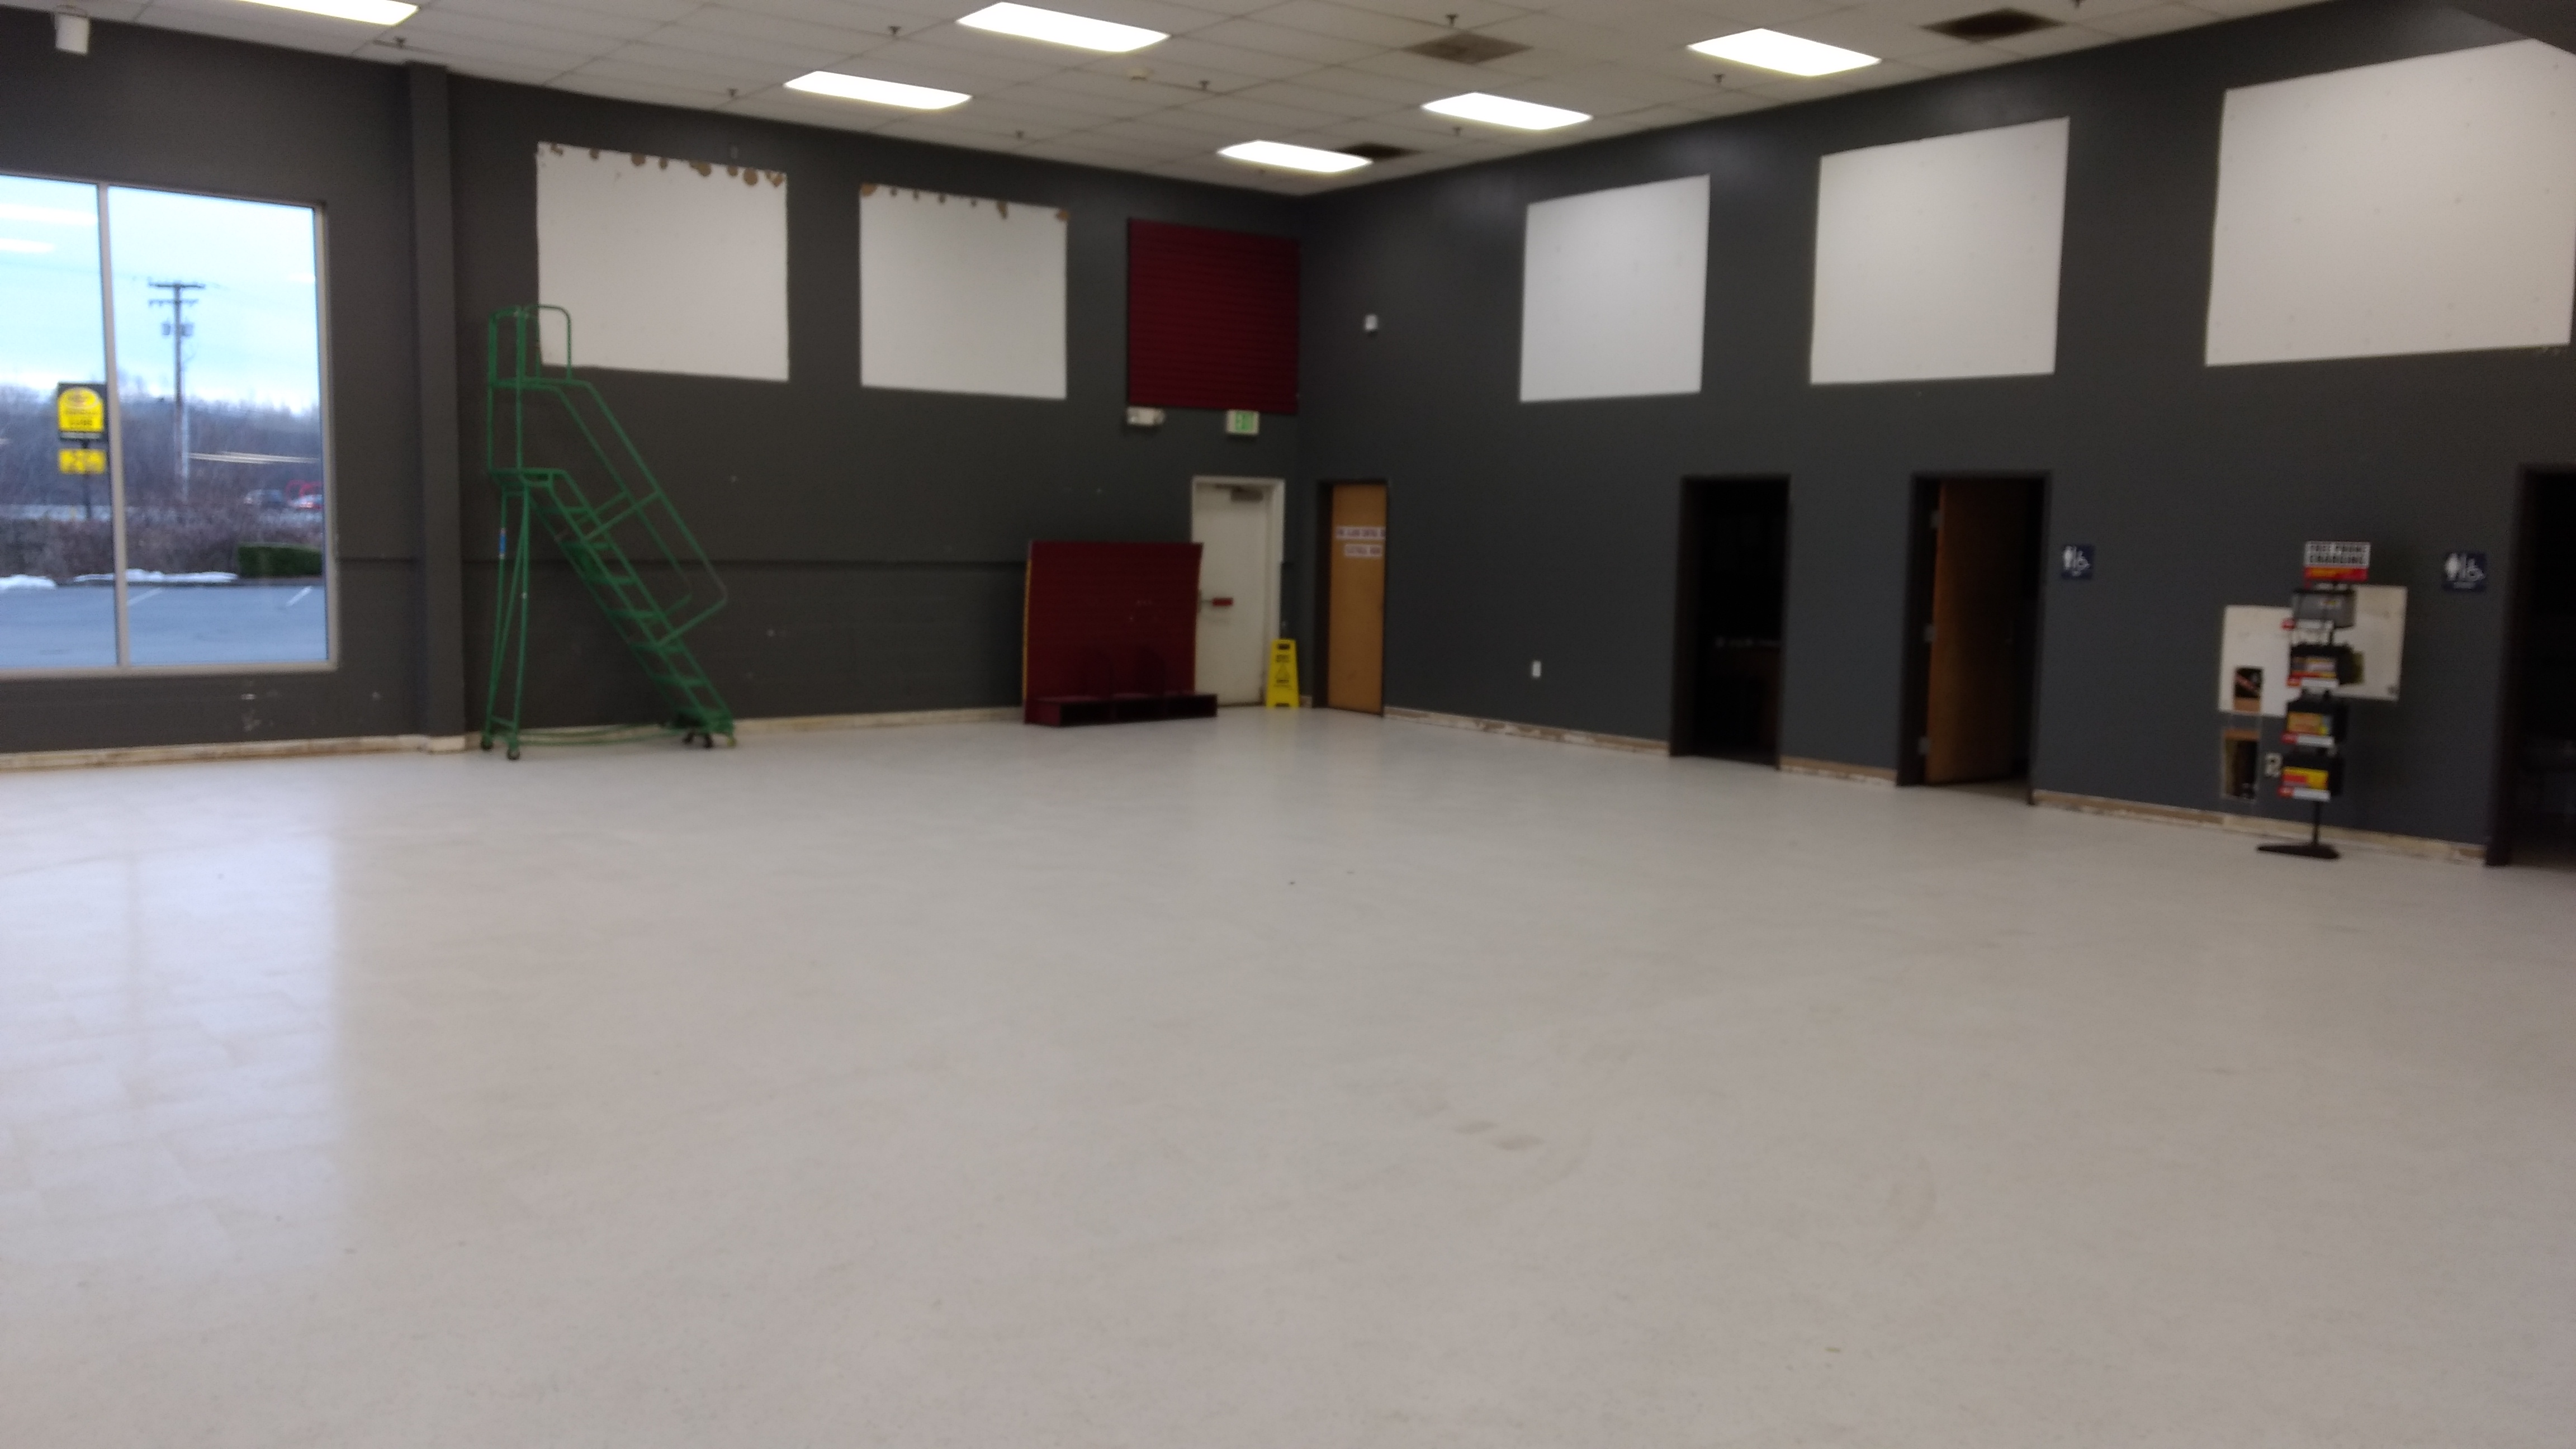 """The interior of the Ferndale Les Schwab Tires location awaits new paint and other new trim elements during a """"remodernization"""" project (February 27, 2019). Photo: My Ferndale News"""